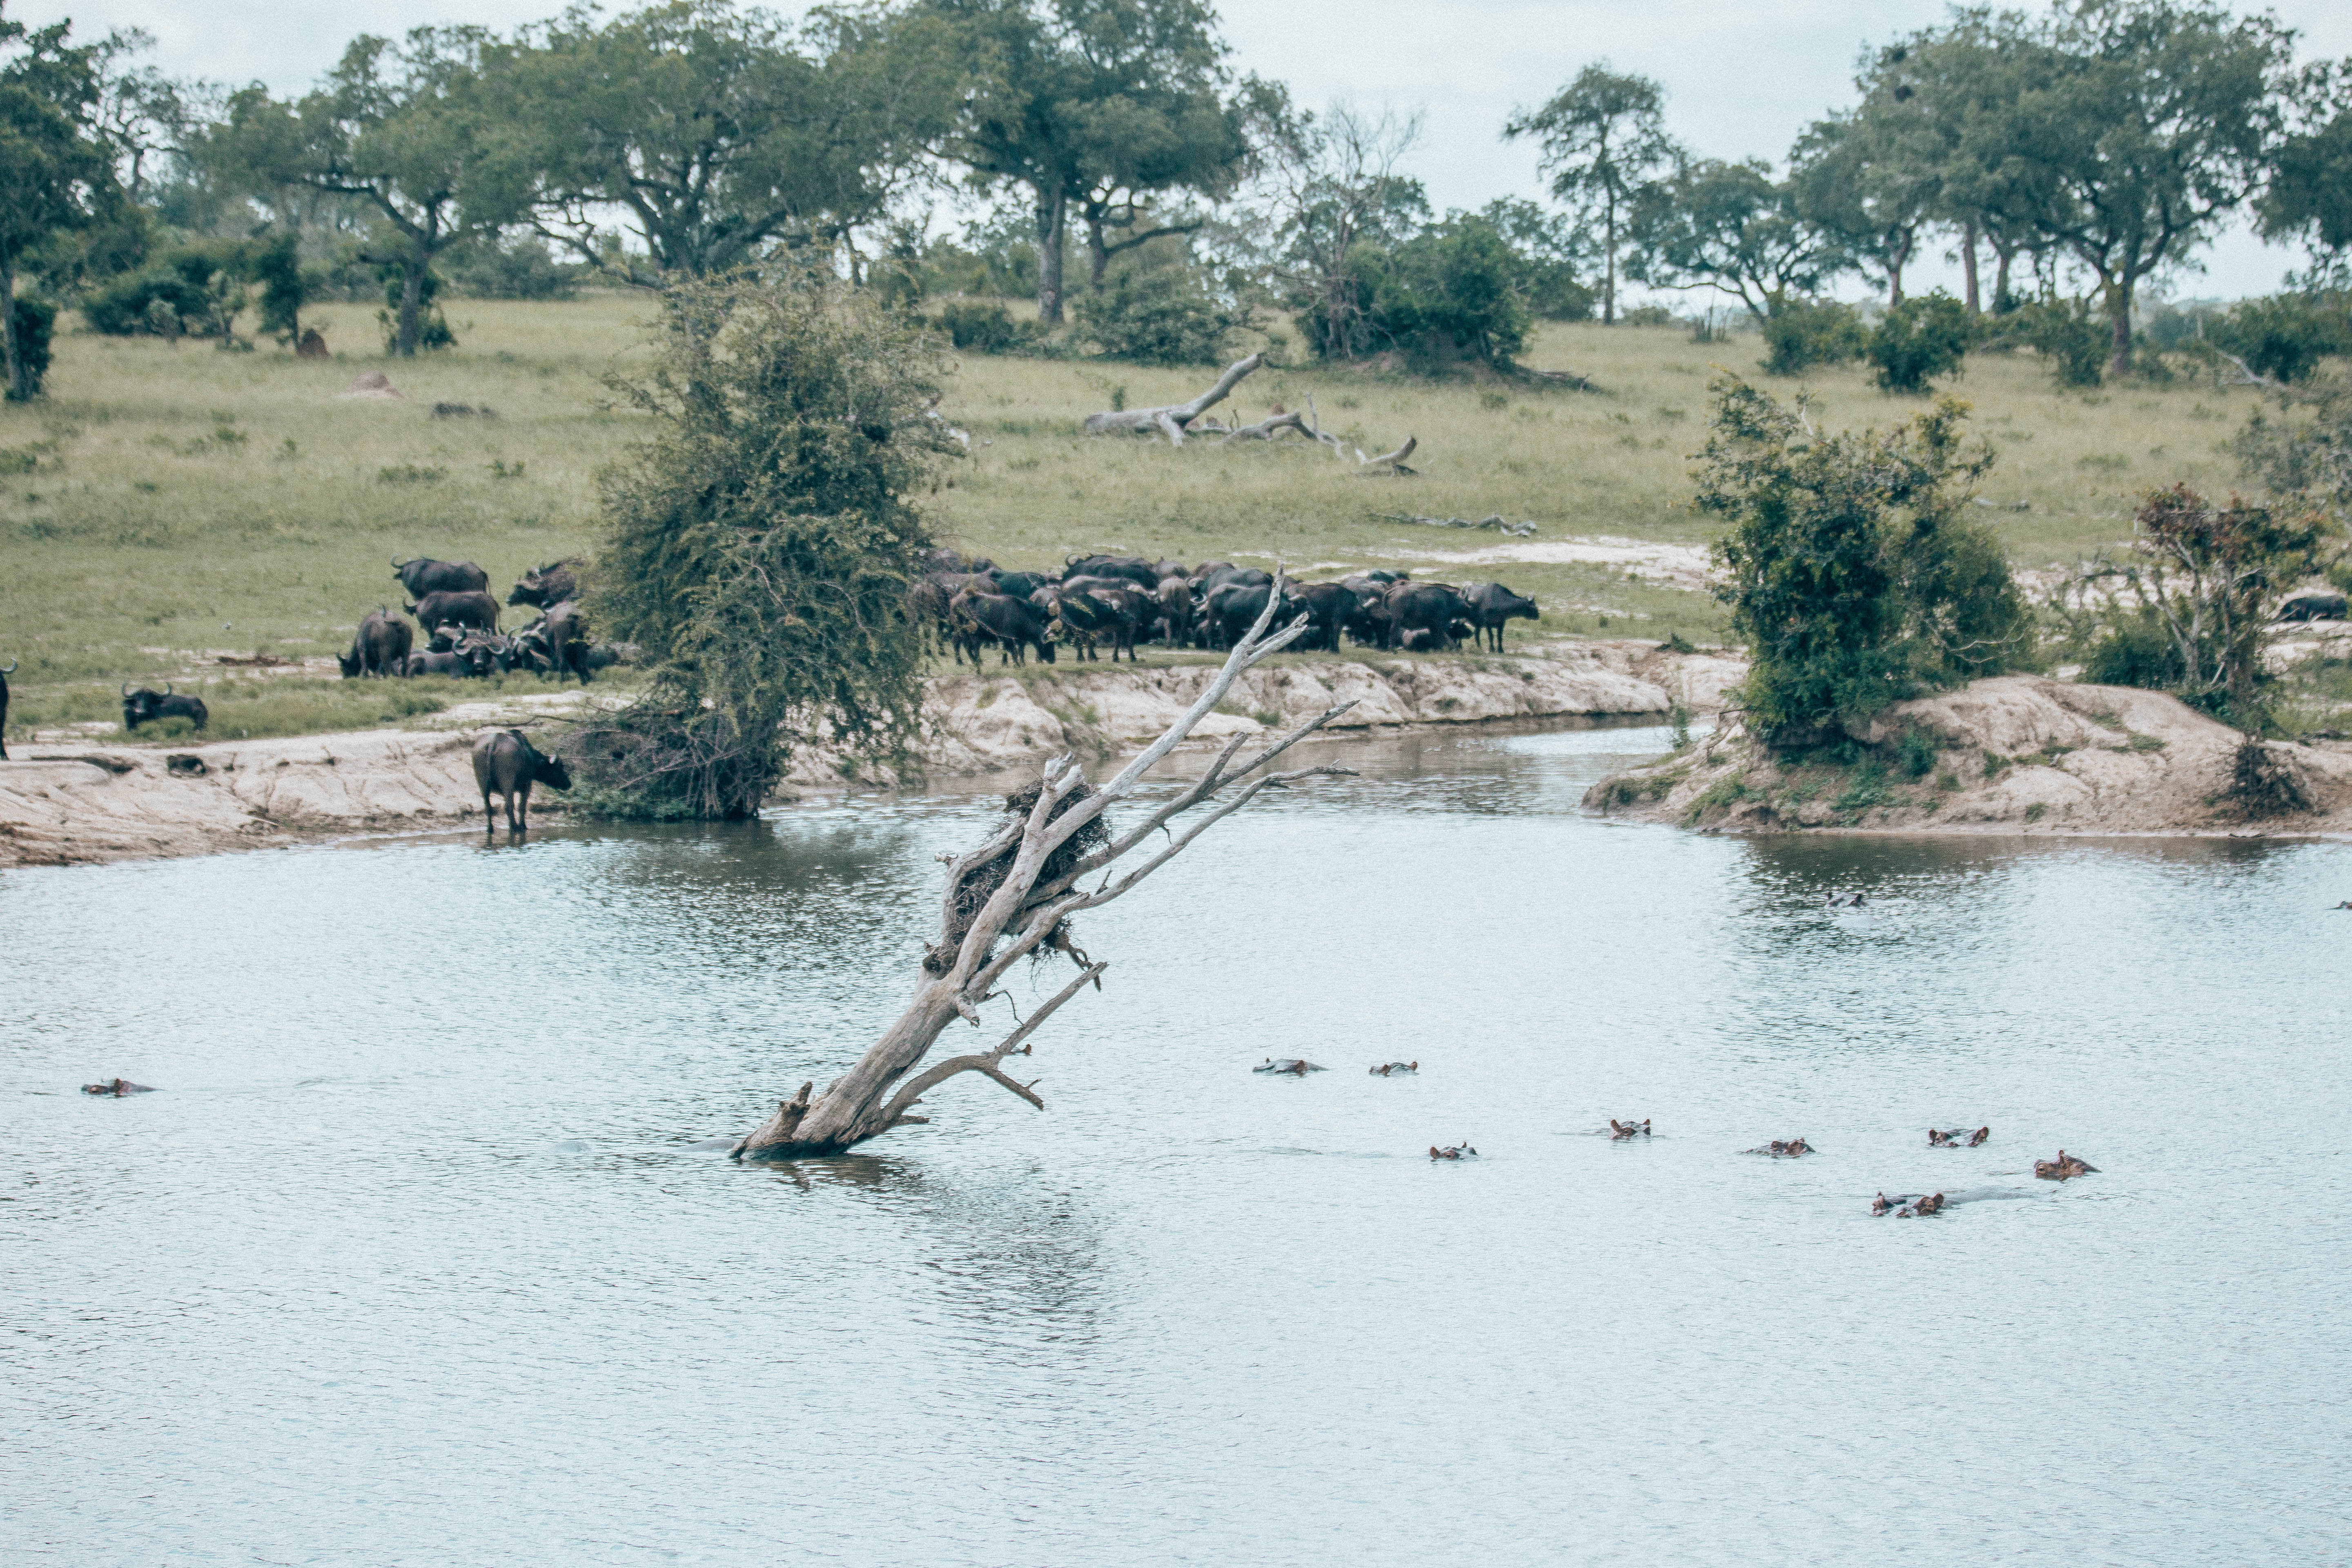 Wildebeest at the watering hole with hippos all around.